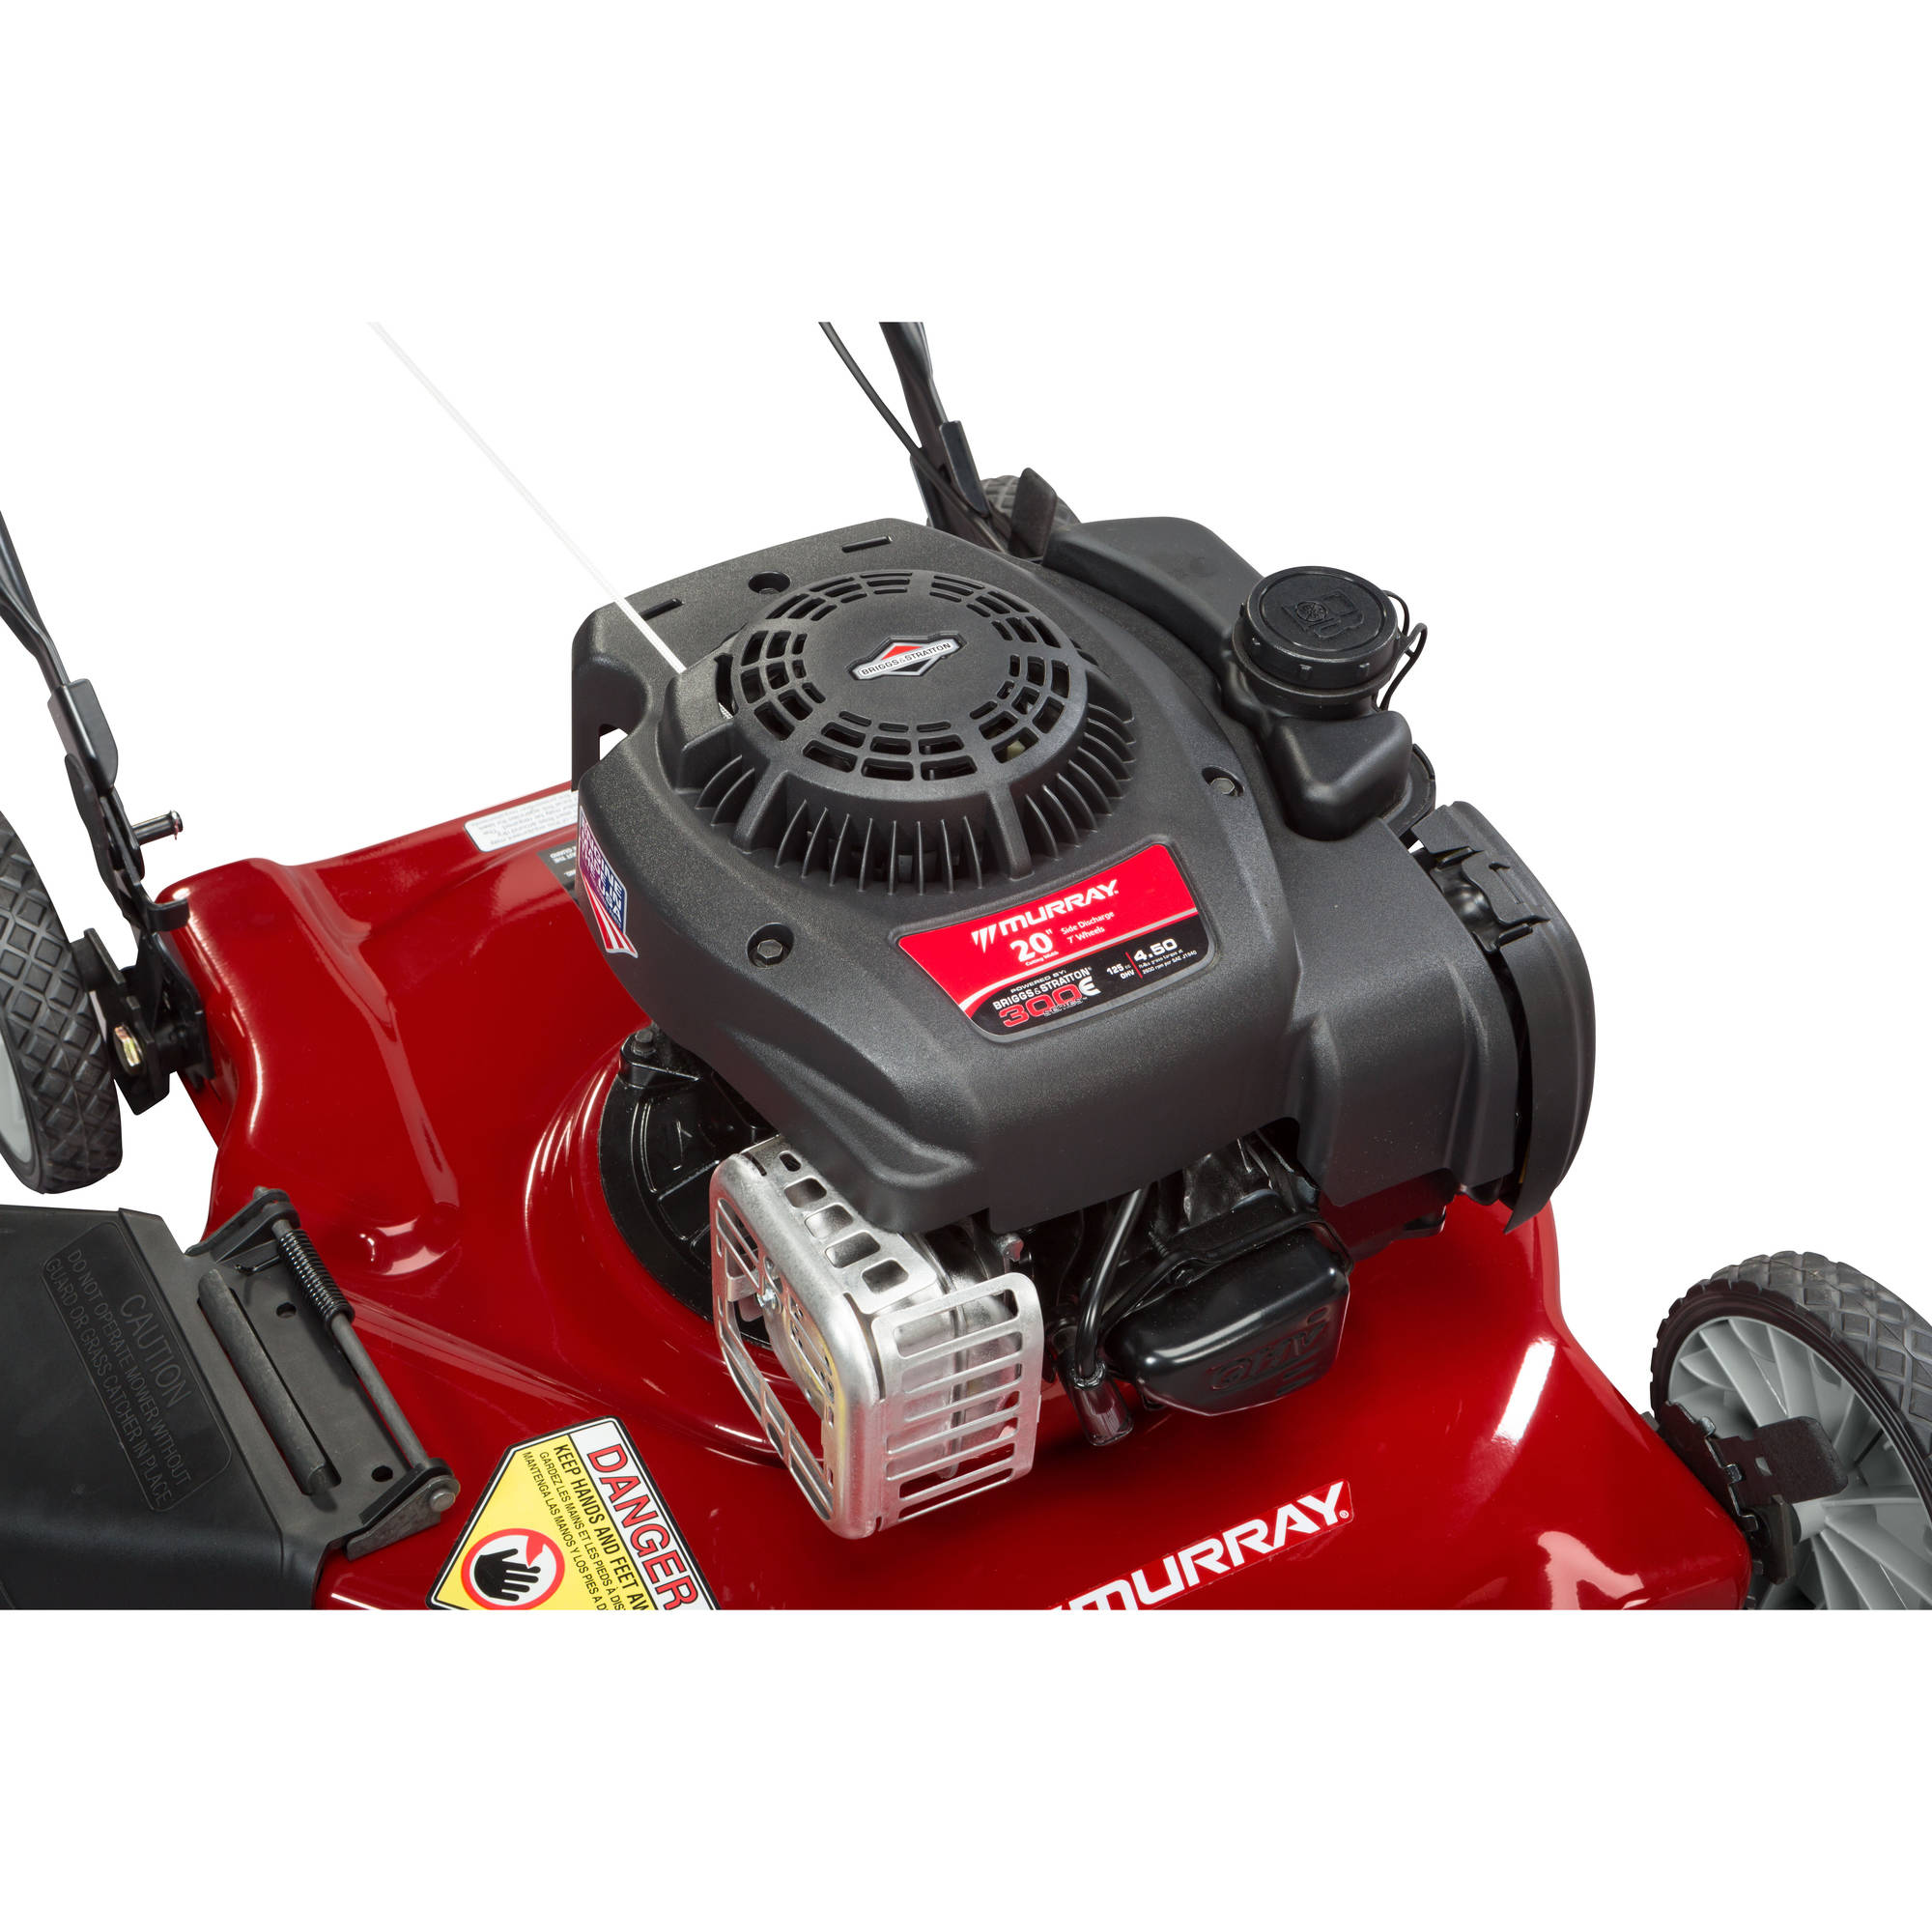 hight resolution of murray 20 125cc gas powered side discharged push lawn mower walmart com